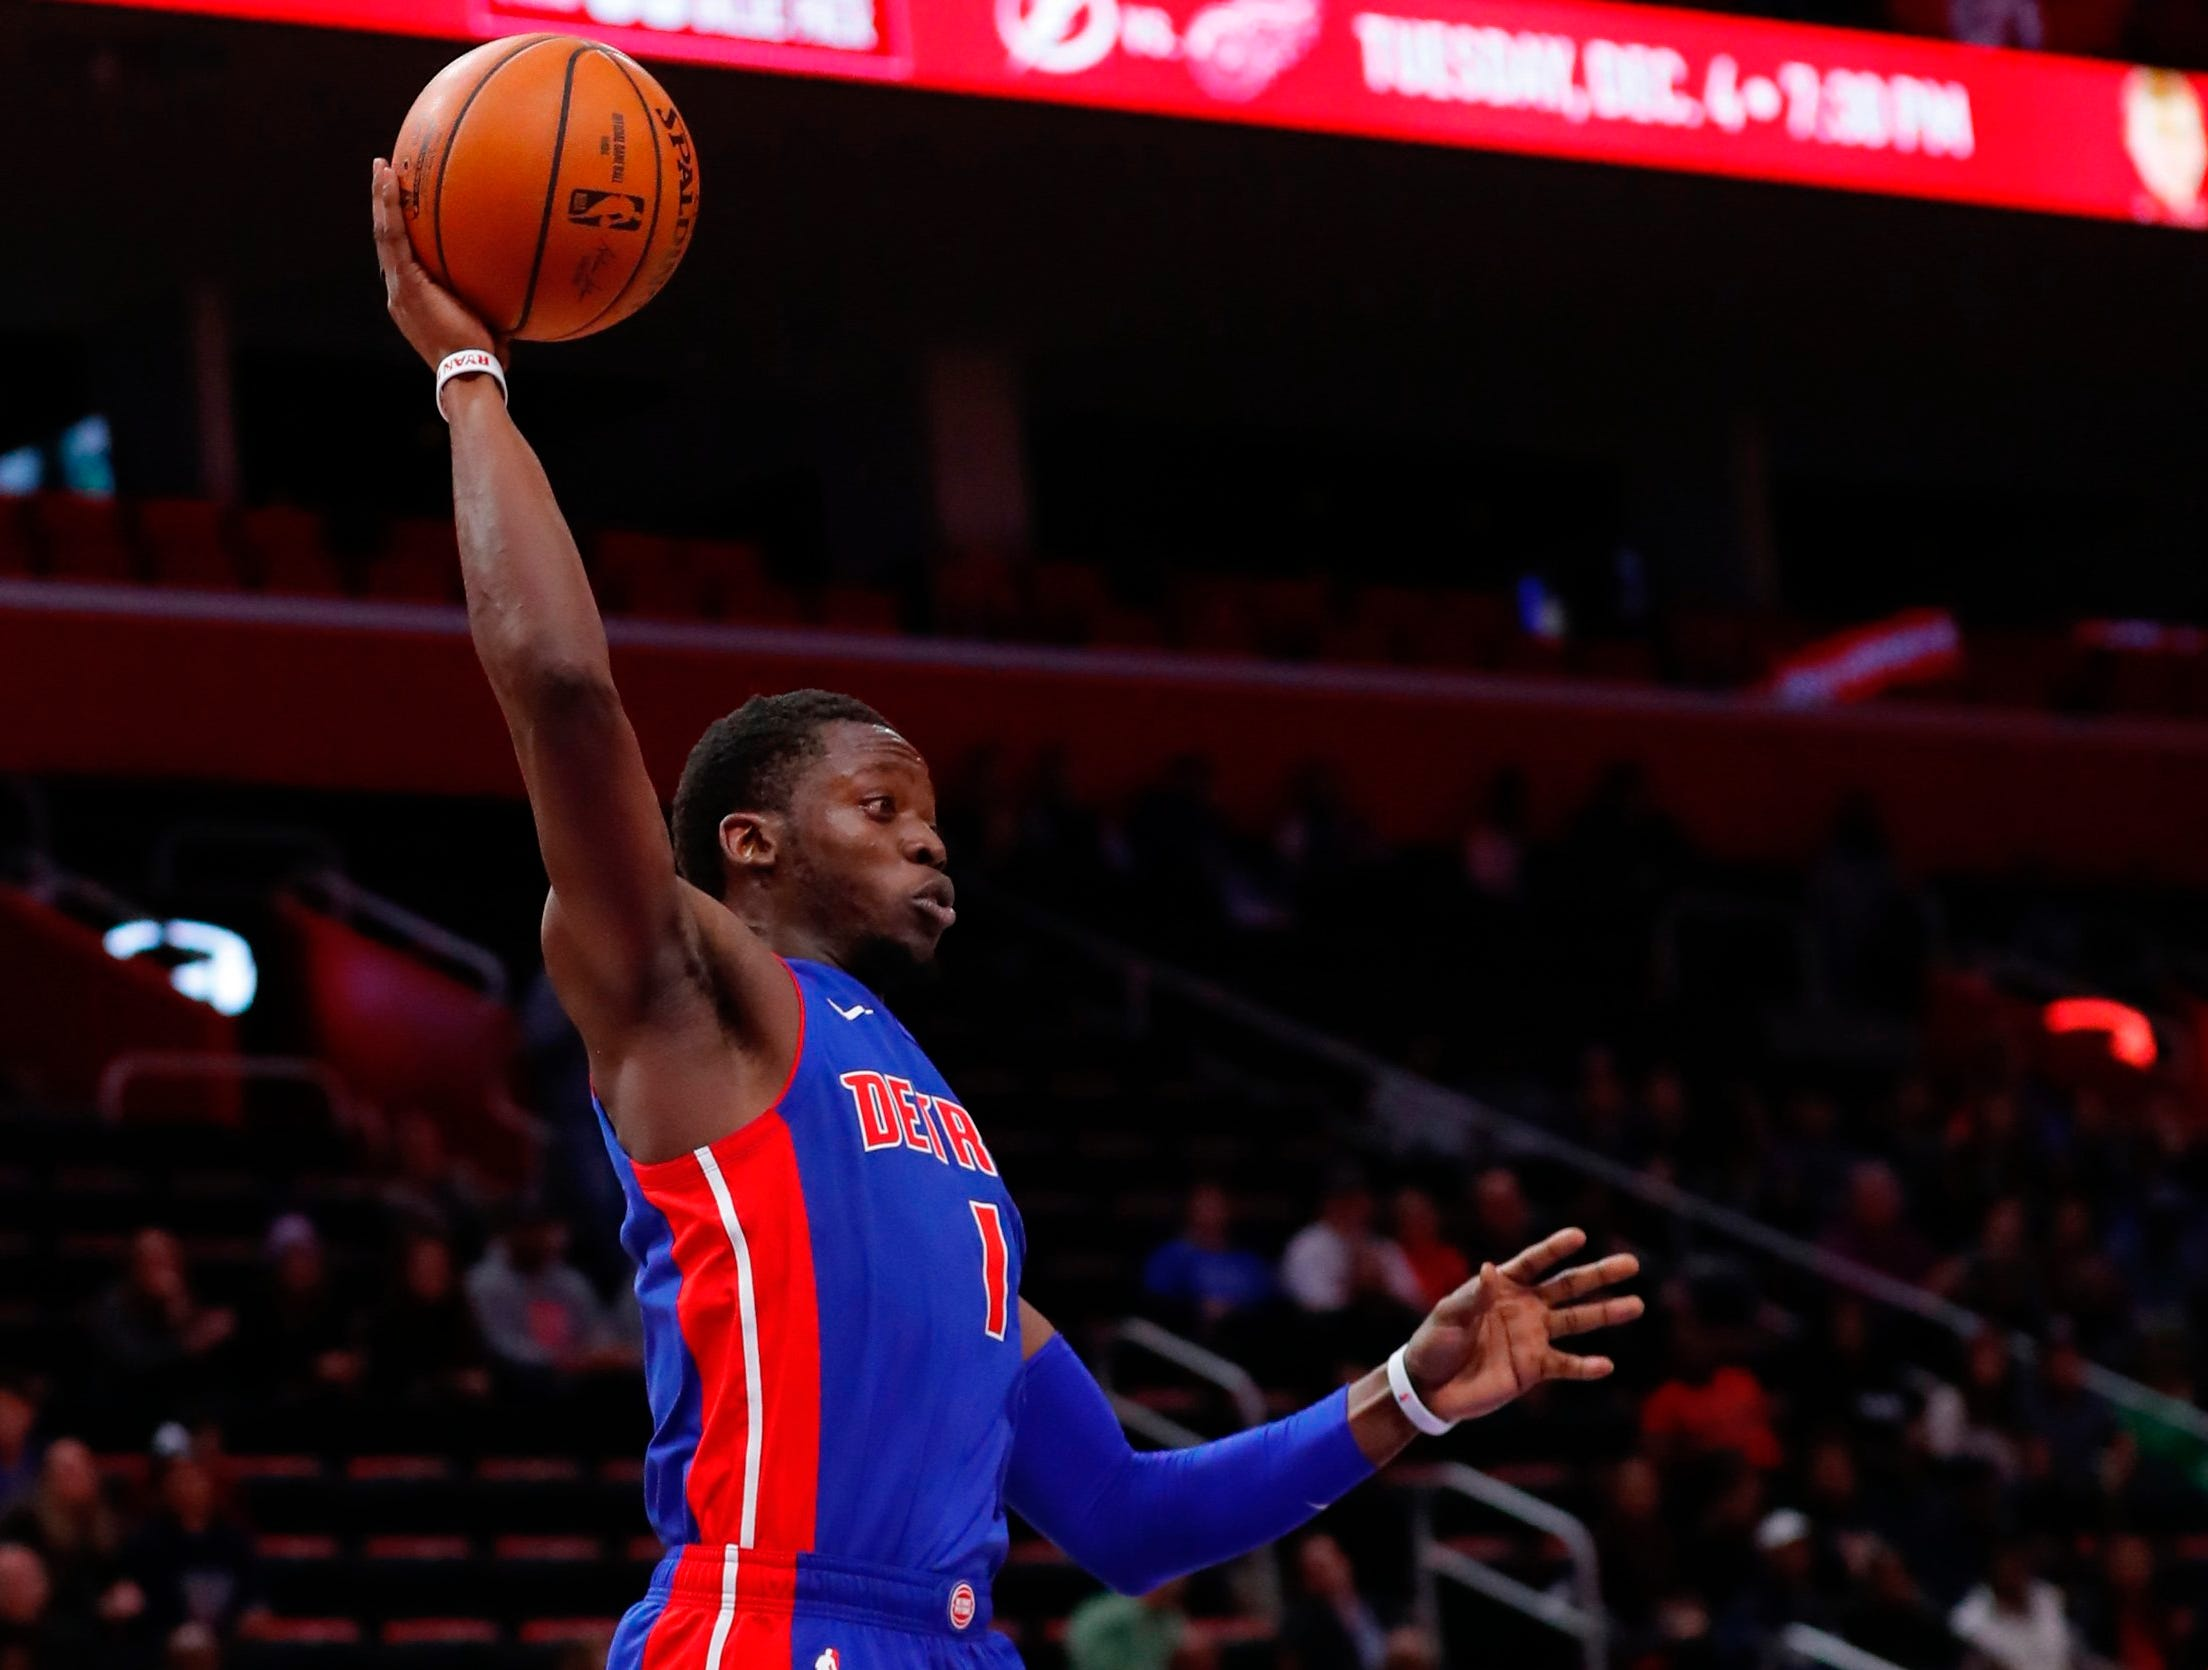 Detroit Pistons guard Reggie Jackson (1) grabs a rebound in the first half against the Oklahoma City Thunder at Little Caesars Arena.